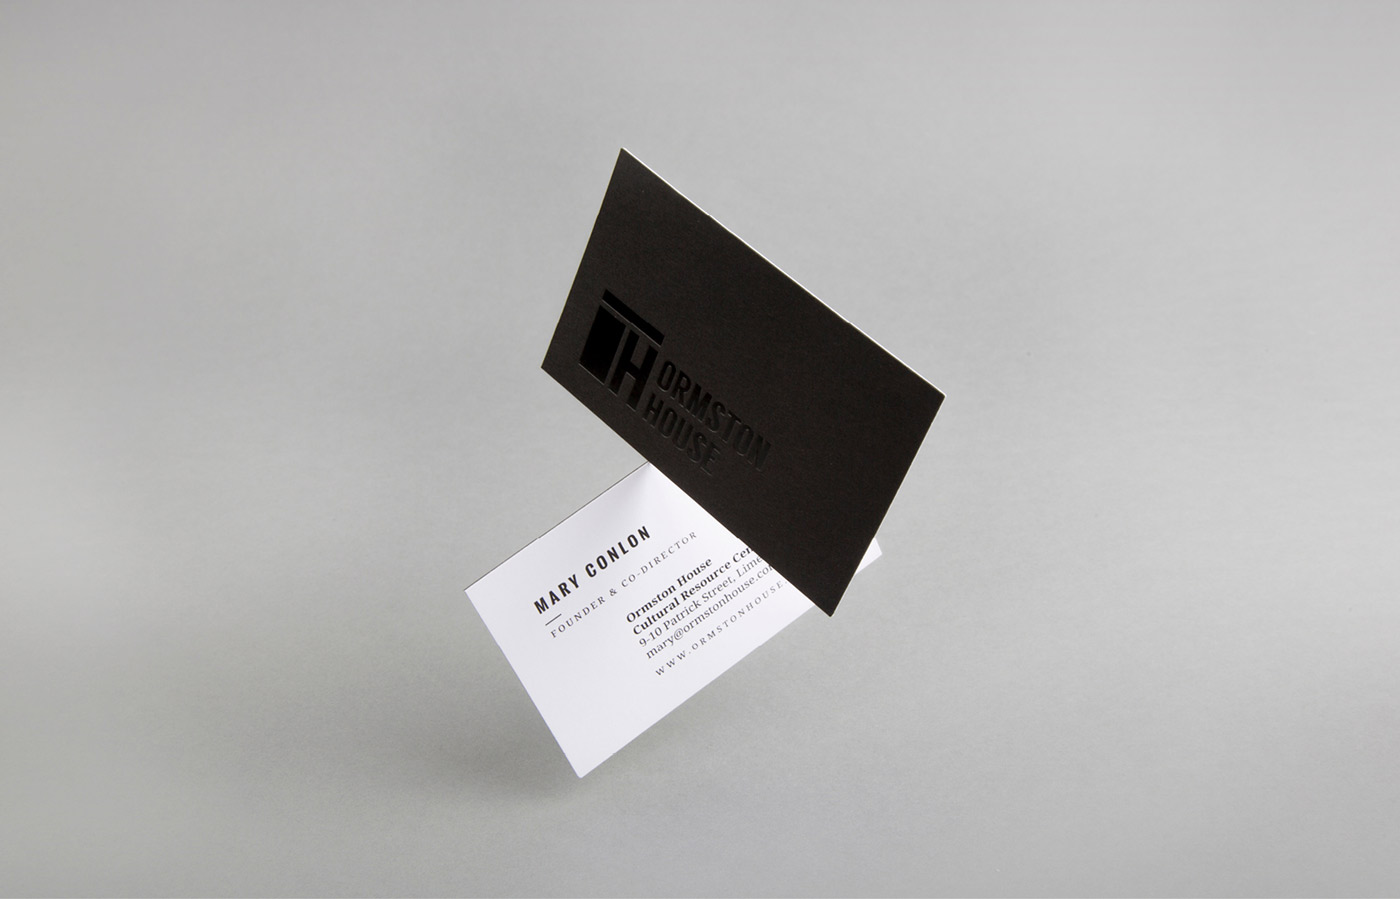 Ormston House Limerick brand development featuring branded business cards.